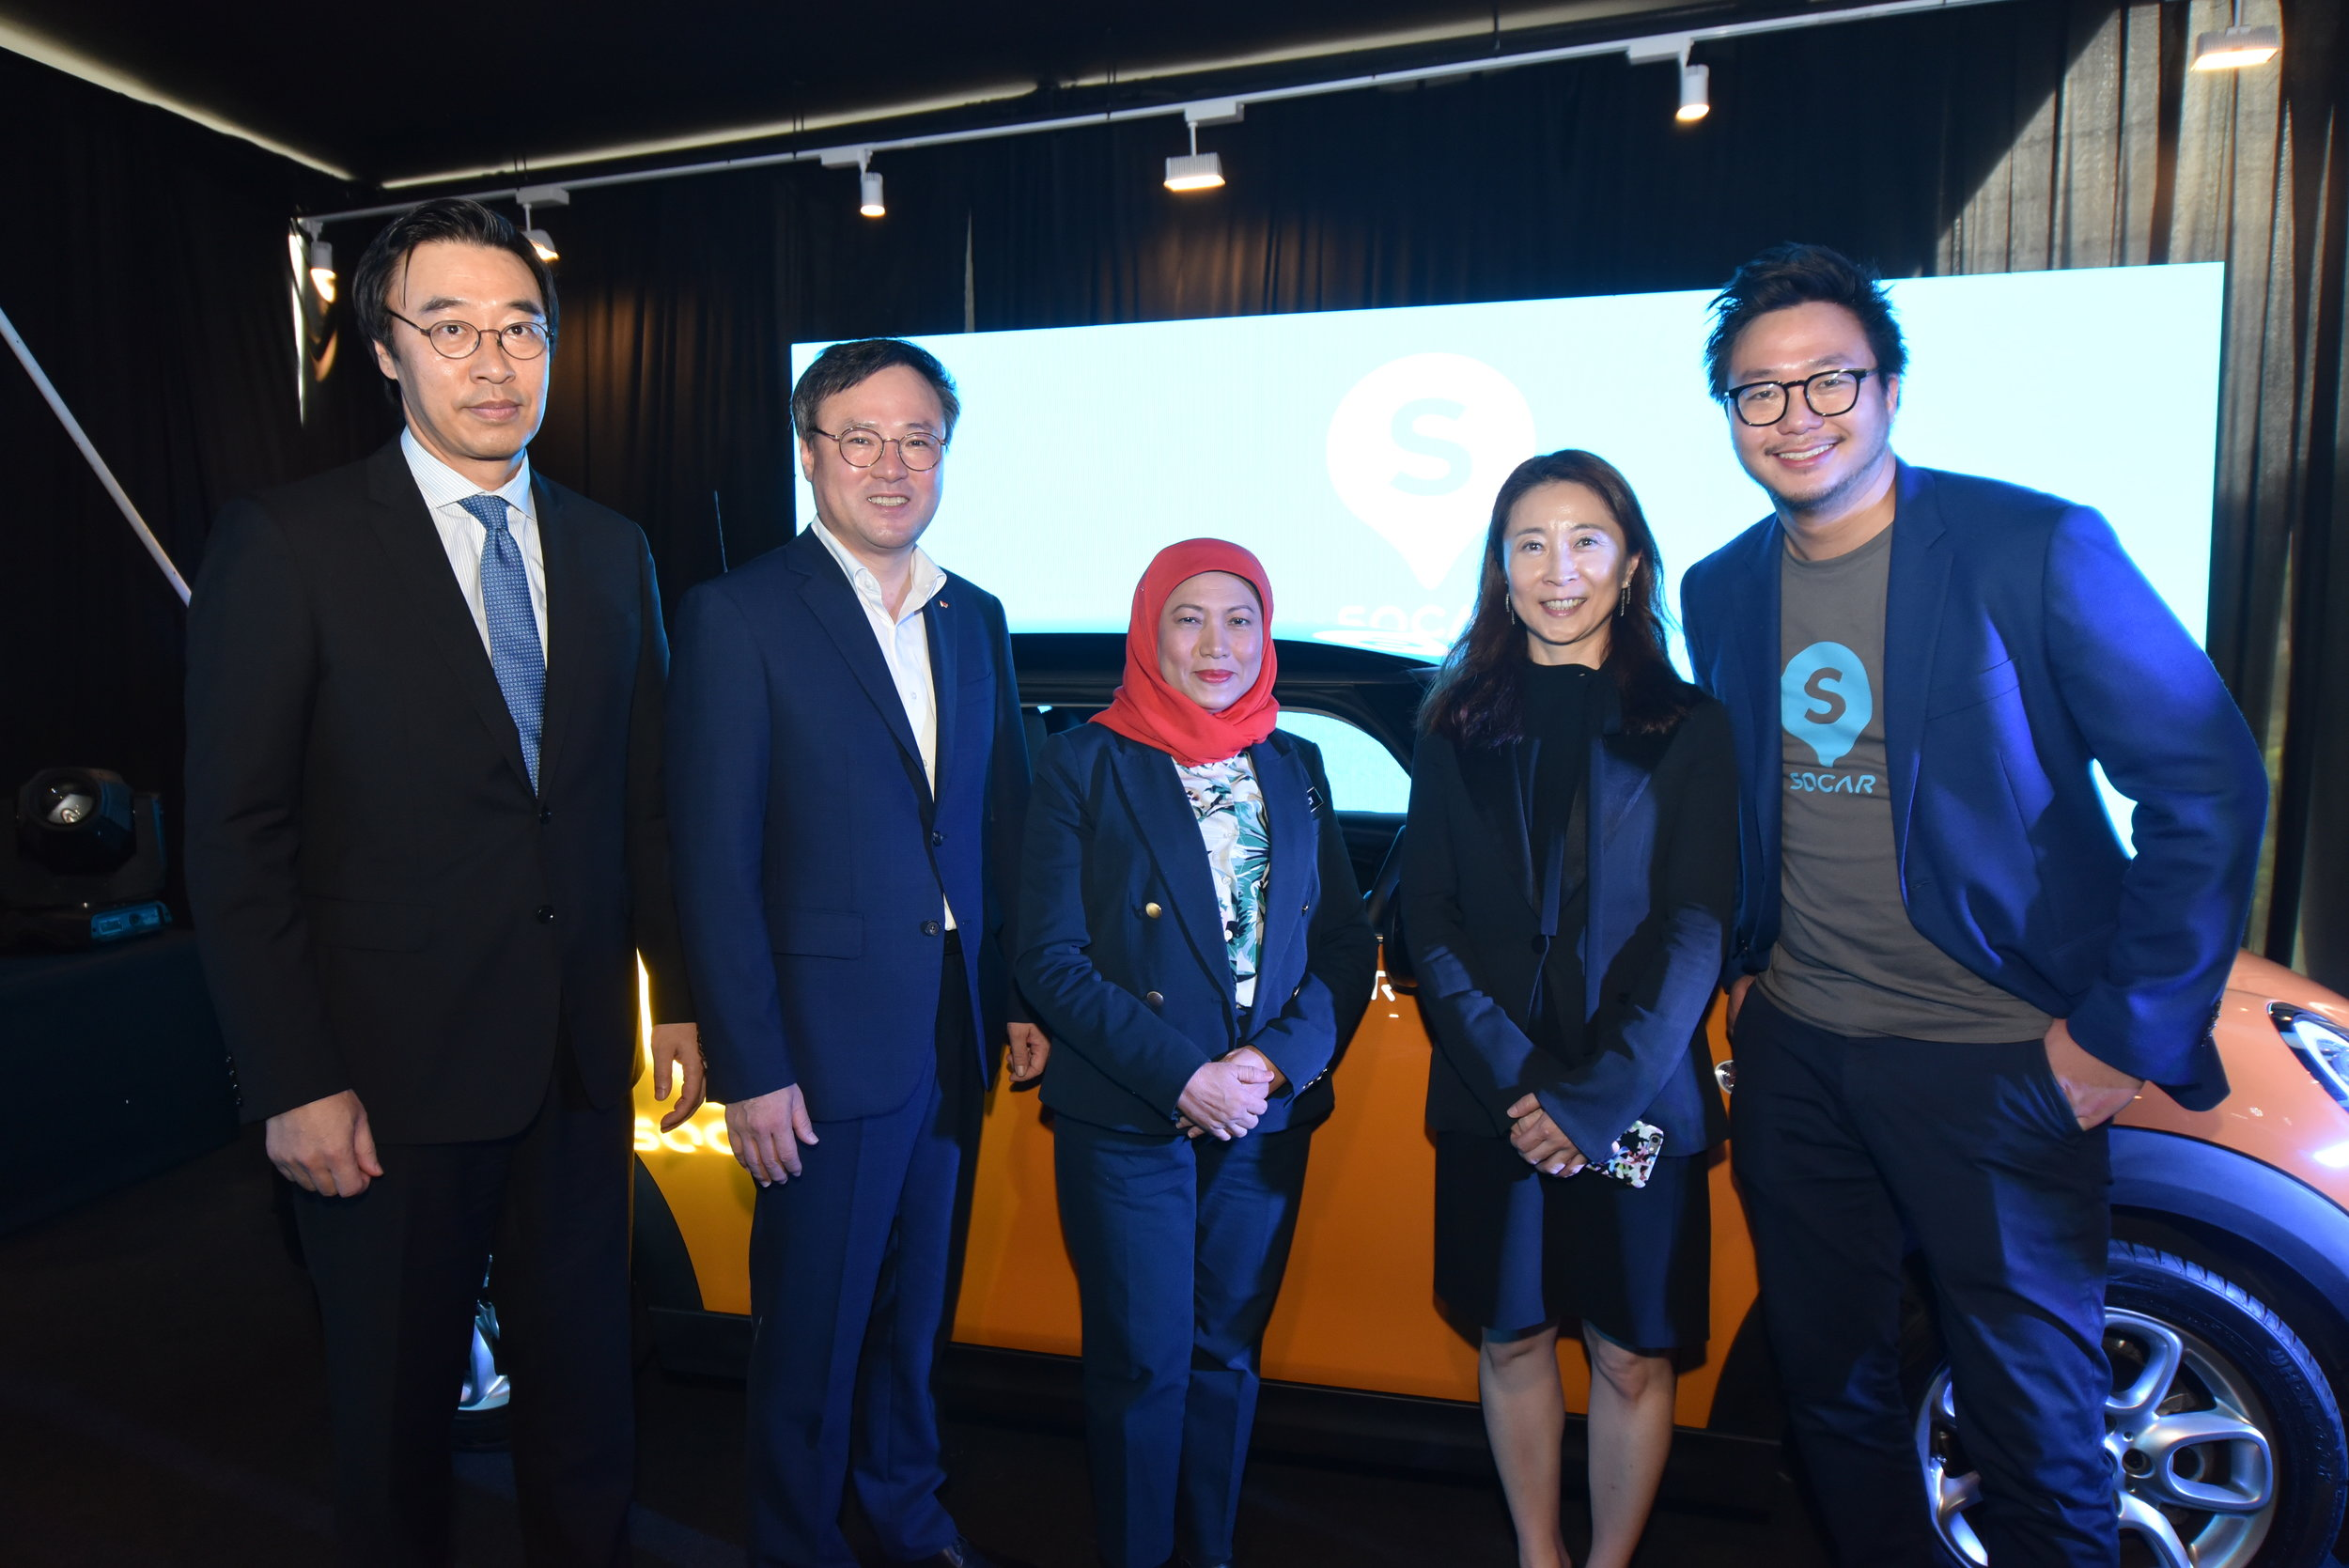 H.E.Dr Yu Hyun-Seok,Ambassador of the Republic of Korea to Malaysia, Mr.Jang Dong-Hyun, CEO of SK Holdings, Y.B.Dato' Sri Hajah Nancy Shukri; Minister in the Prime Minister's Department, Cho Jeong Yeol; CEO of SOCAR Korea and Leon Foong, CEO  SOCAR.JPG